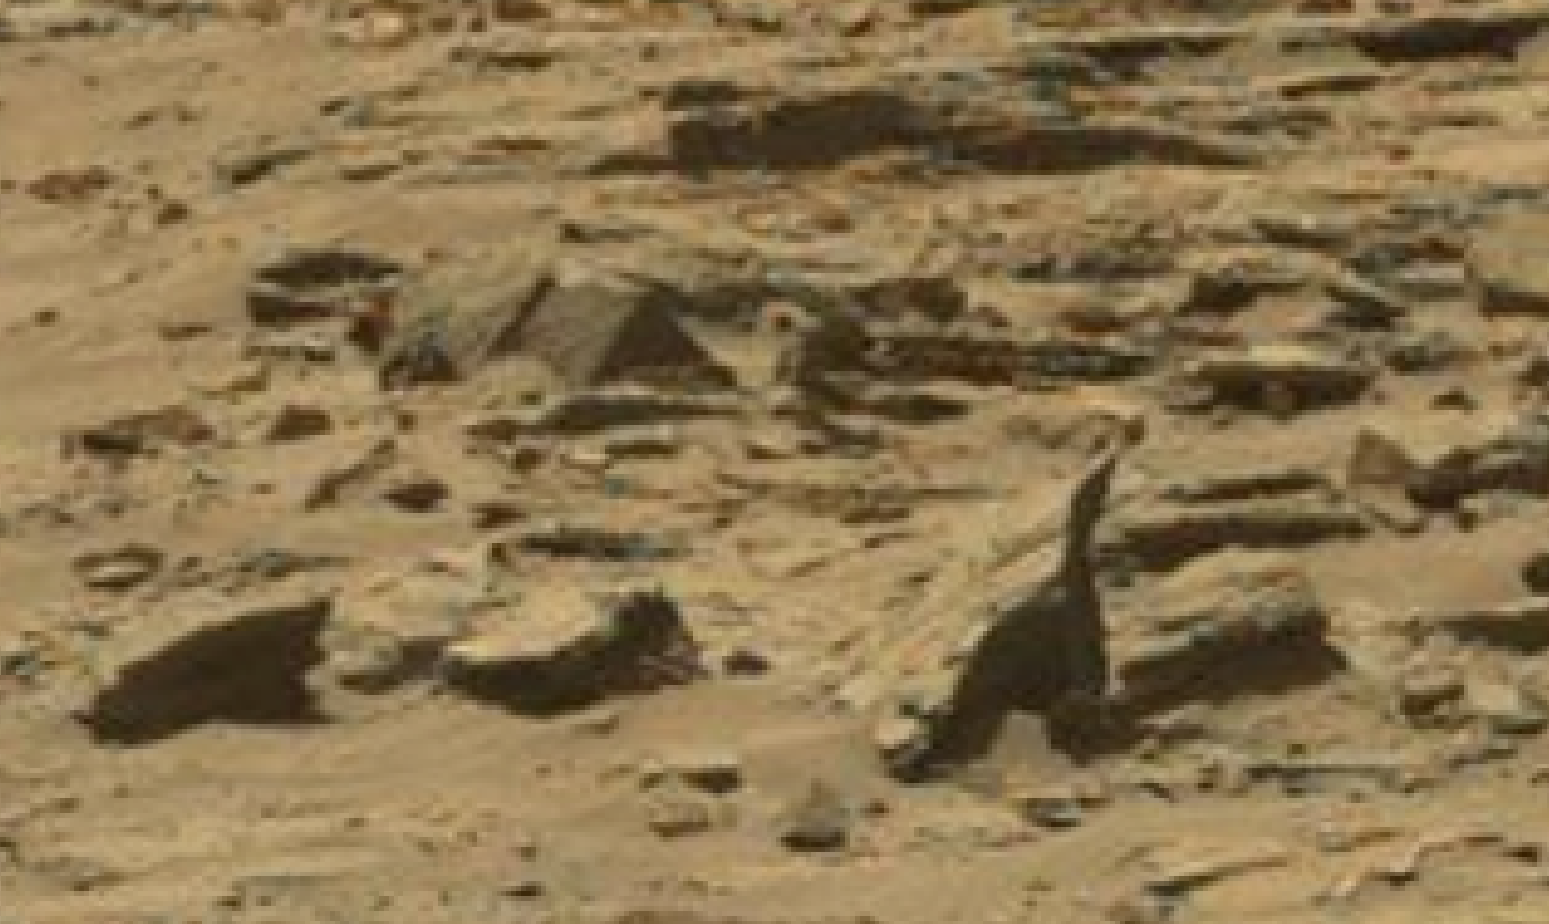 mars sol 1296 anomaly-artifacts 15 was life on mars